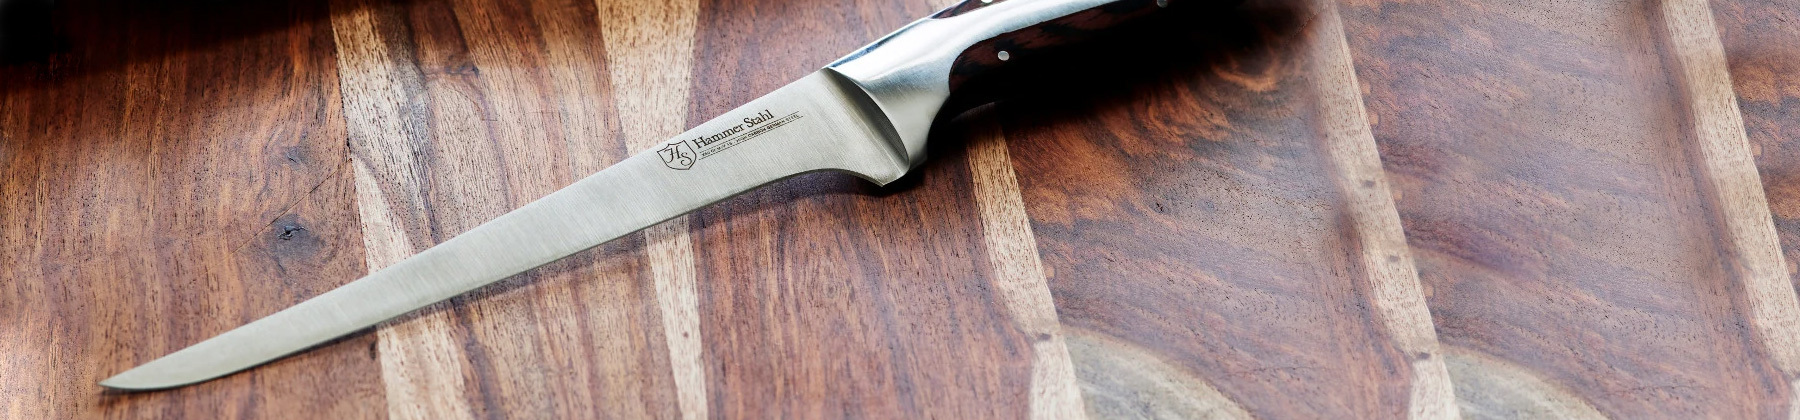 Photo of cleaver and boning knife.